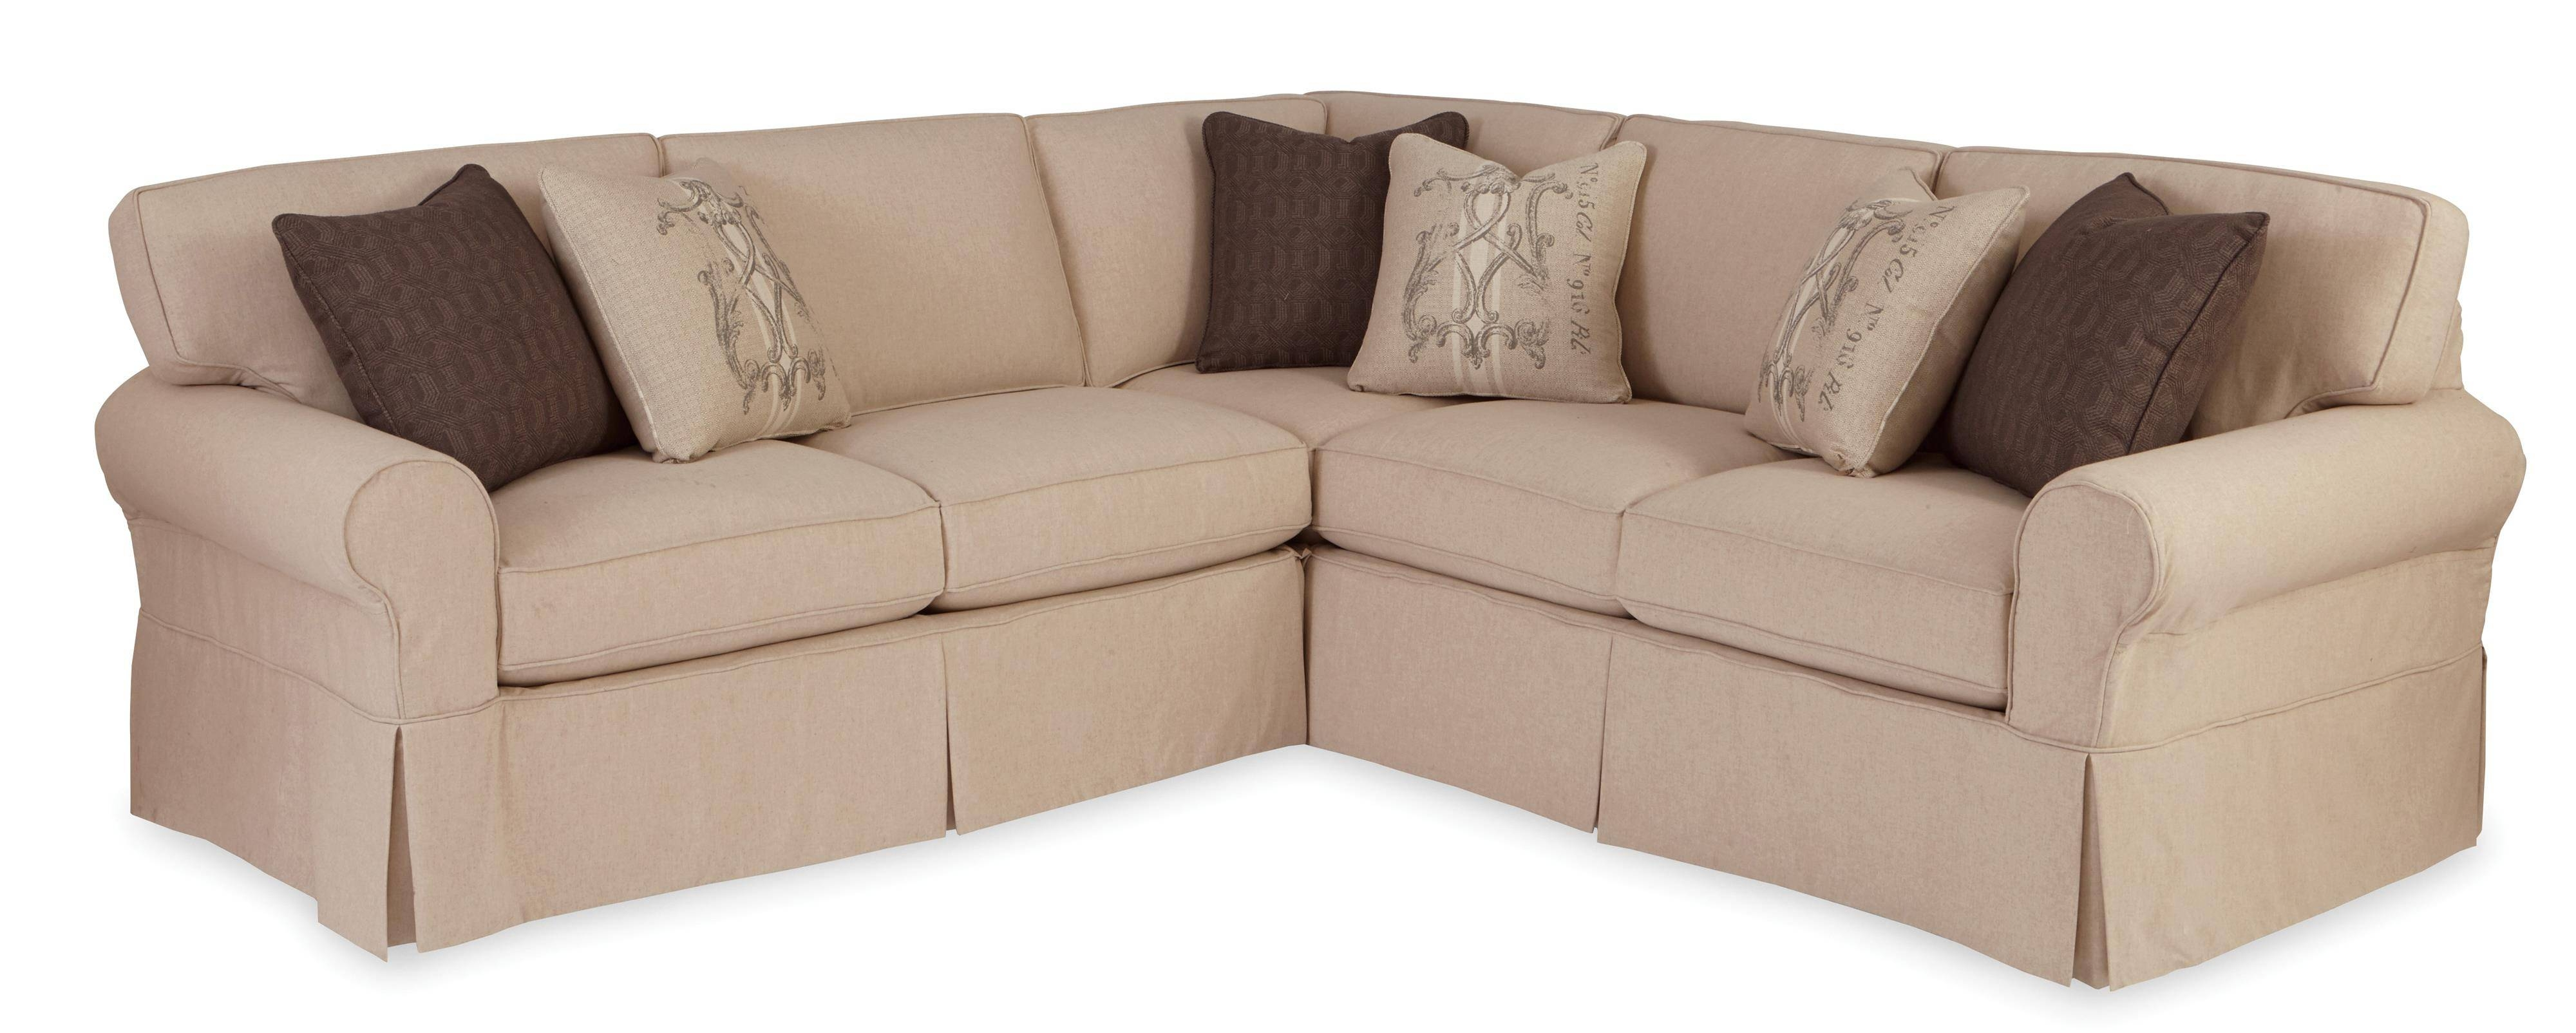 Inspirations: Interesting Furniture Sectional Sofa Slipcovers For pertaining to 3 Piece Sectional Sofa Slipcovers (Image 16 of 33)